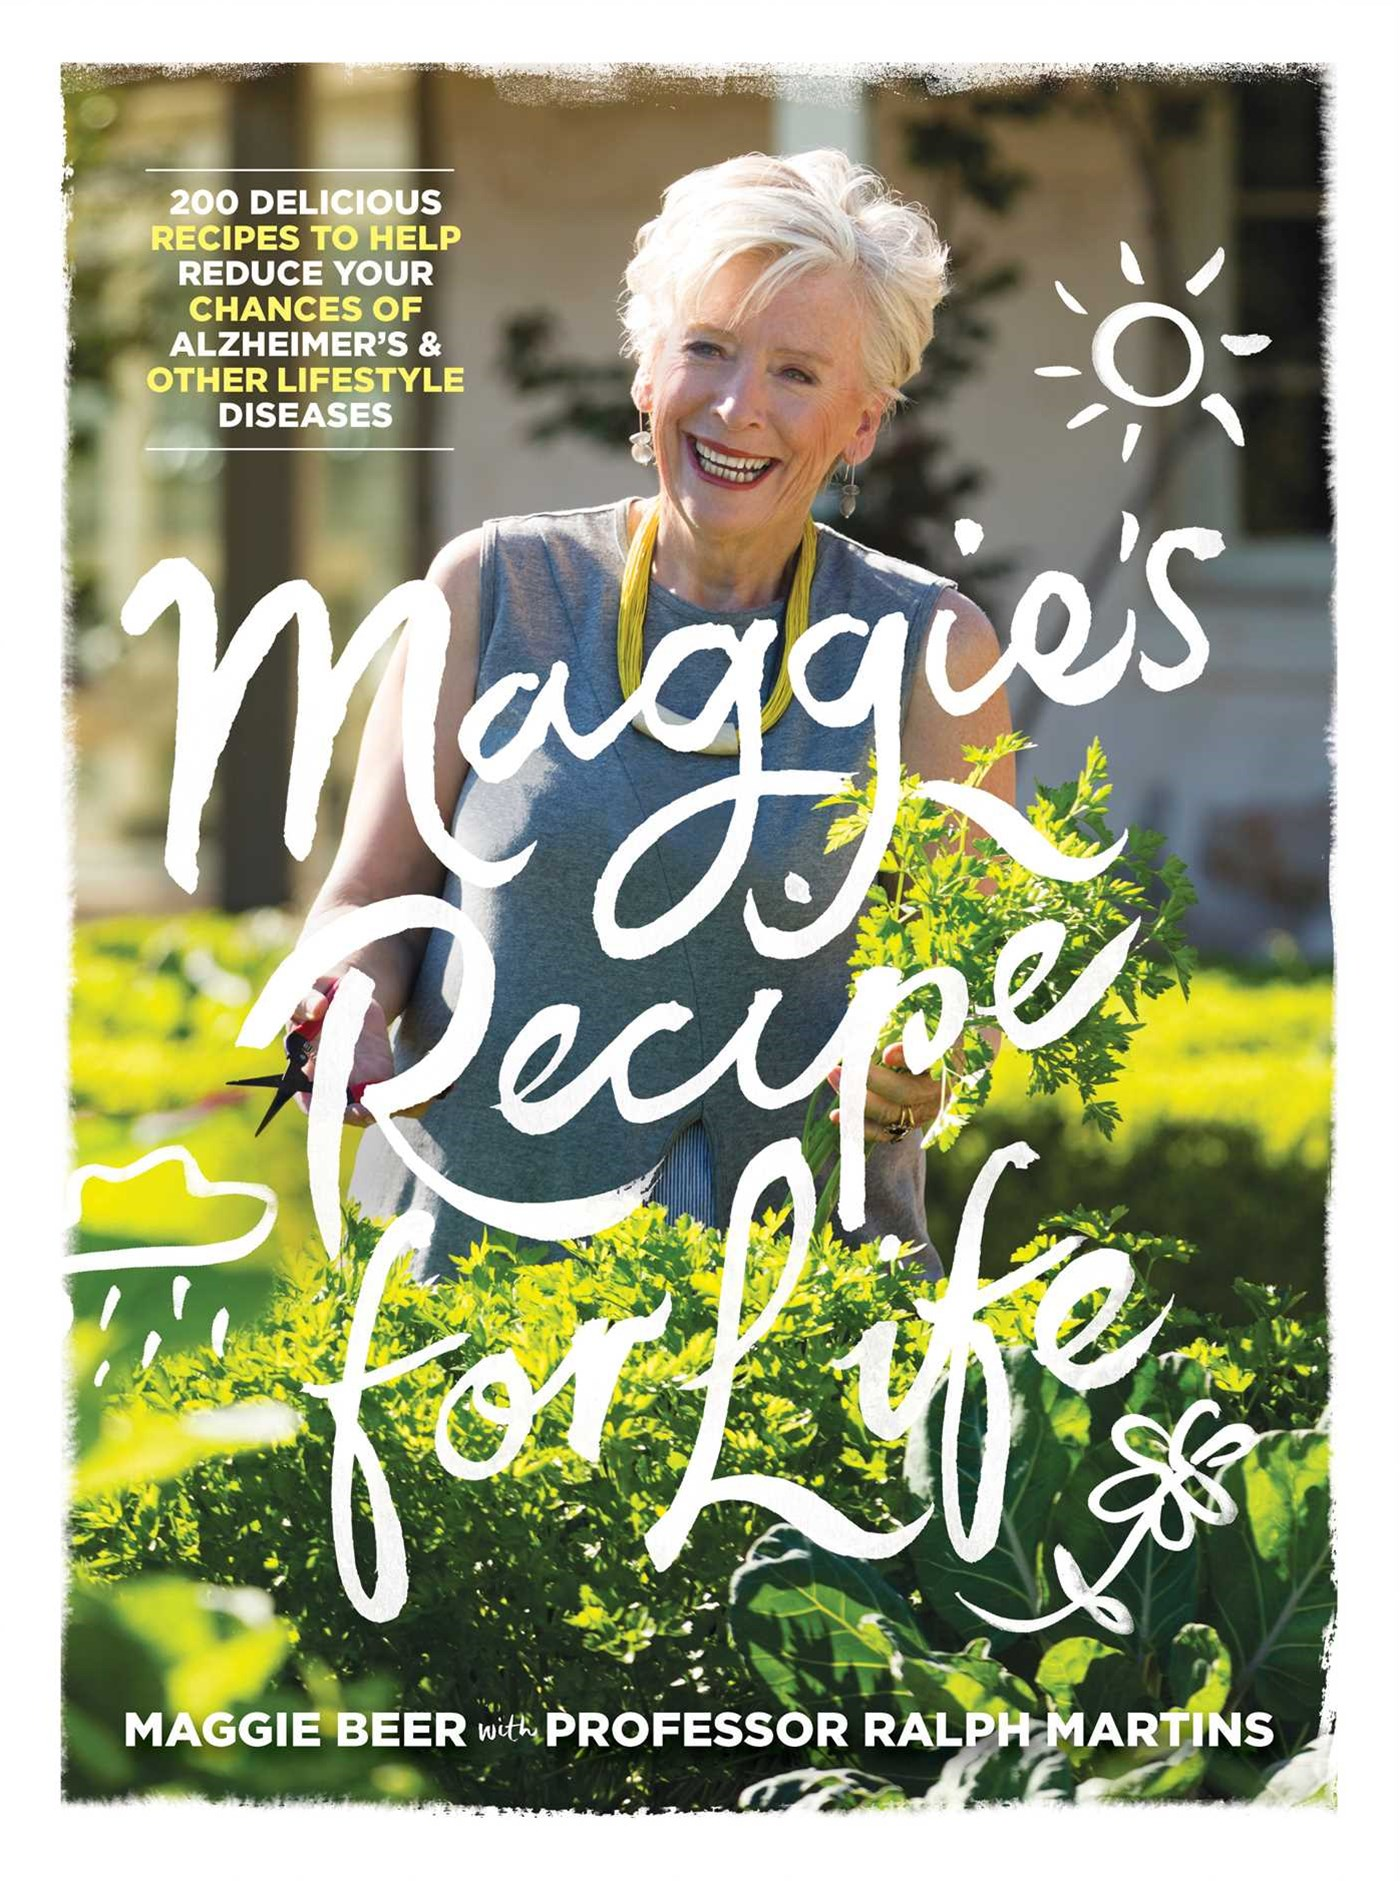 Meet Maggie Beer and leading alzheimer's researcher professor Ralph Martins in conversation with Meri Fatin